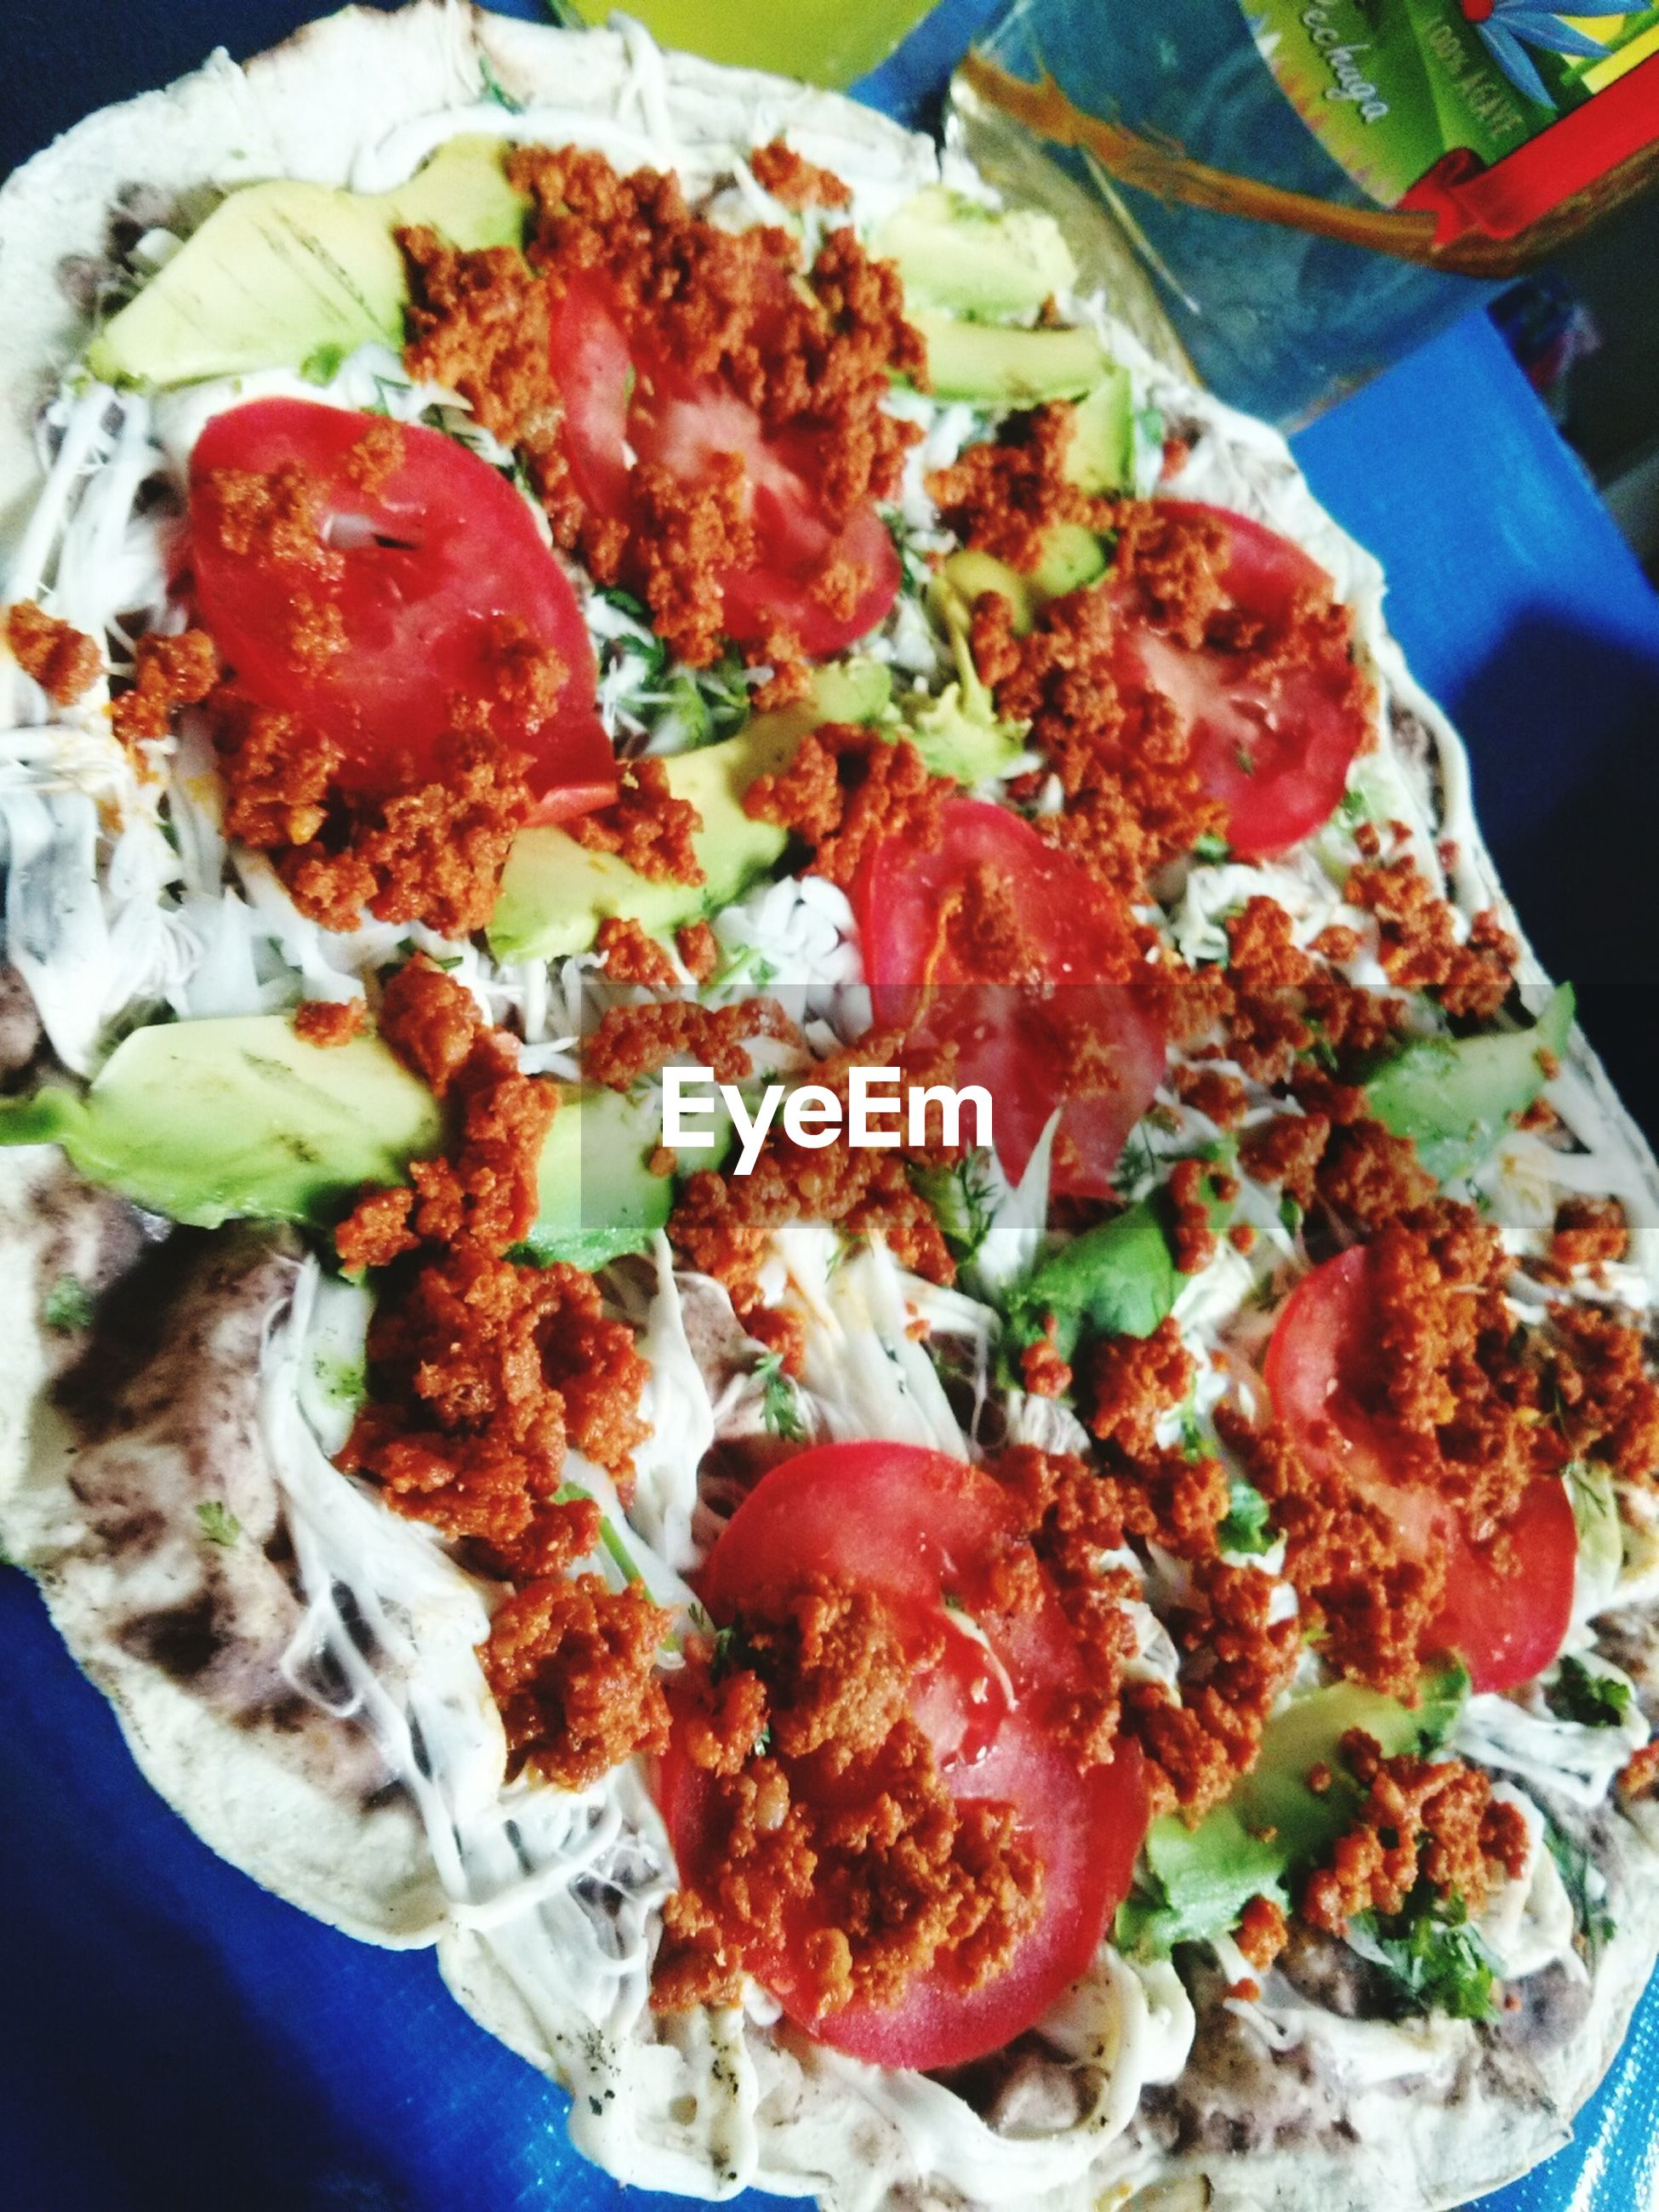 food, food and drink, freshness, indoors, ready-to-eat, healthy eating, still life, pizza, close-up, plate, serving size, meal, indulgence, tomato, salad, vegetable, meat, slice, cheese, high angle view